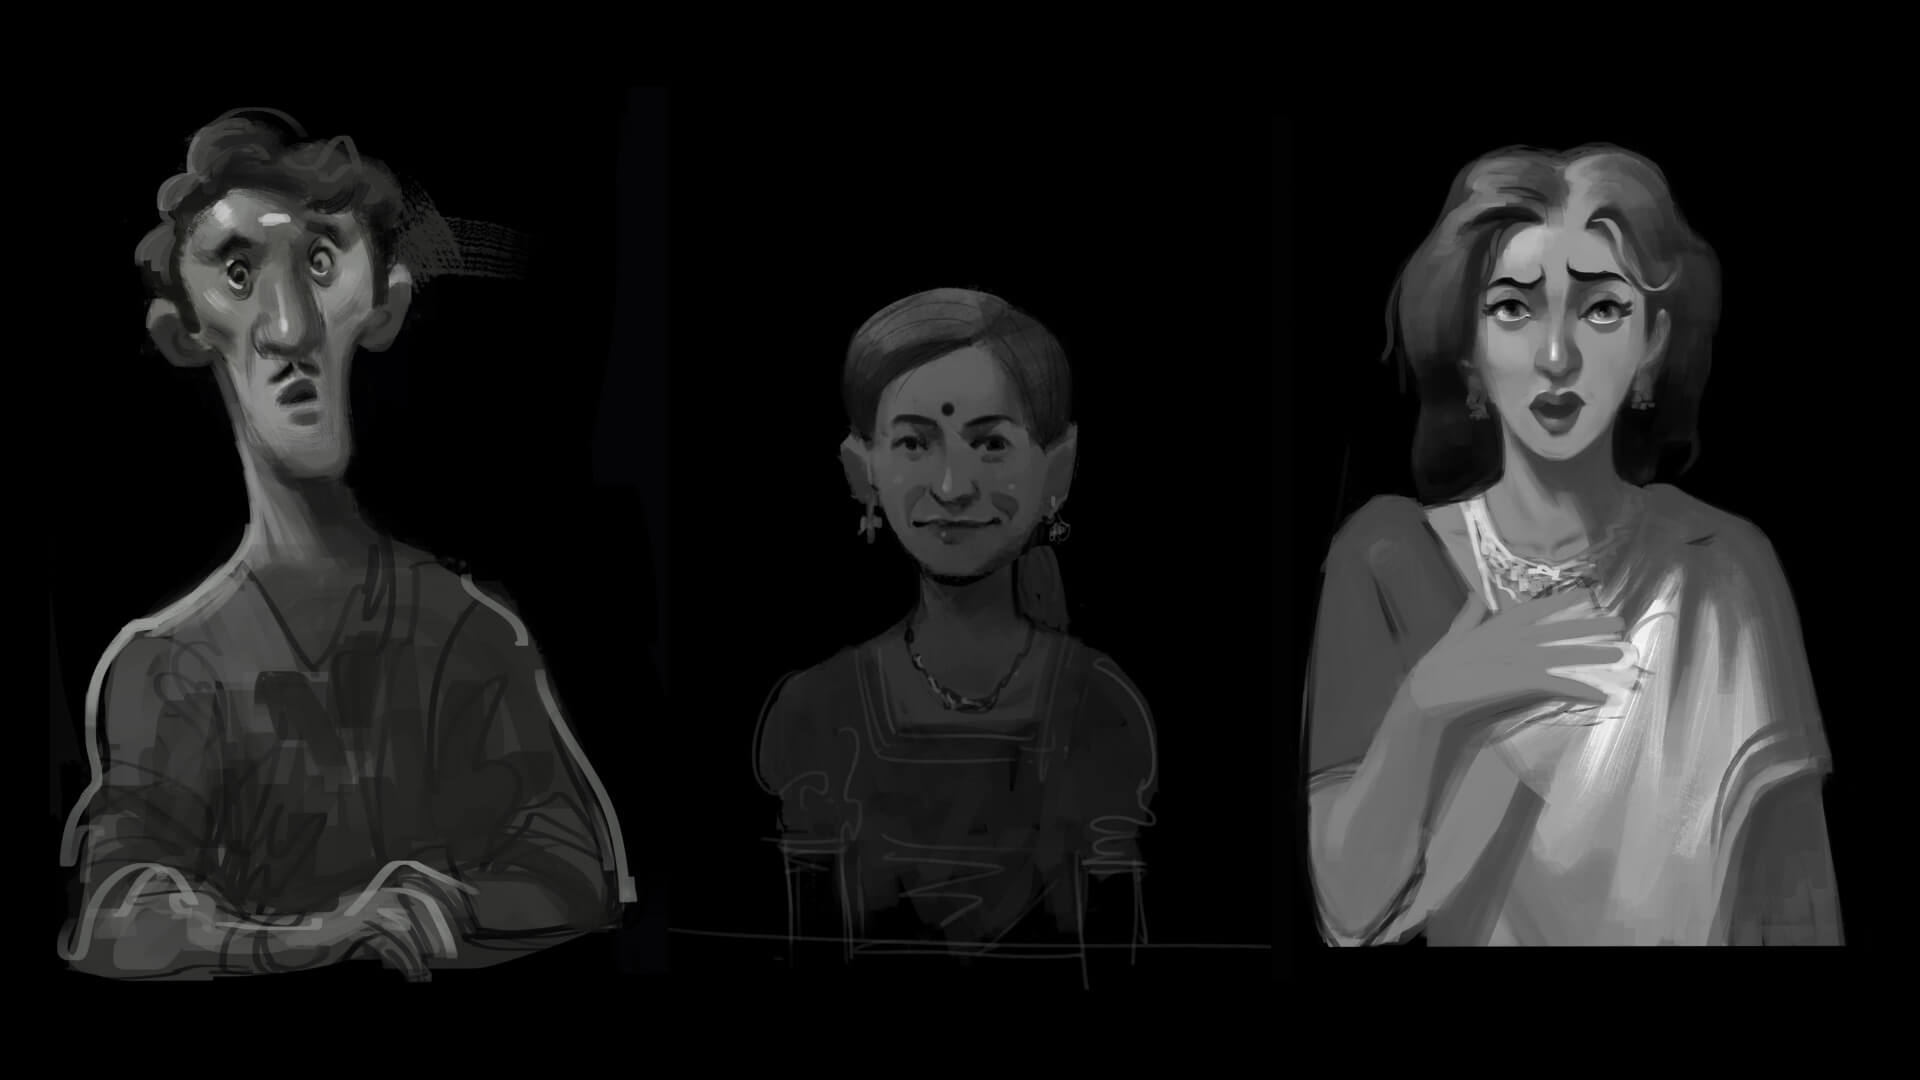 Character mockups for Death of a Detective, an adventure game set in 1940s British India | Death of a Detective by The Roots Collective | STIRworld